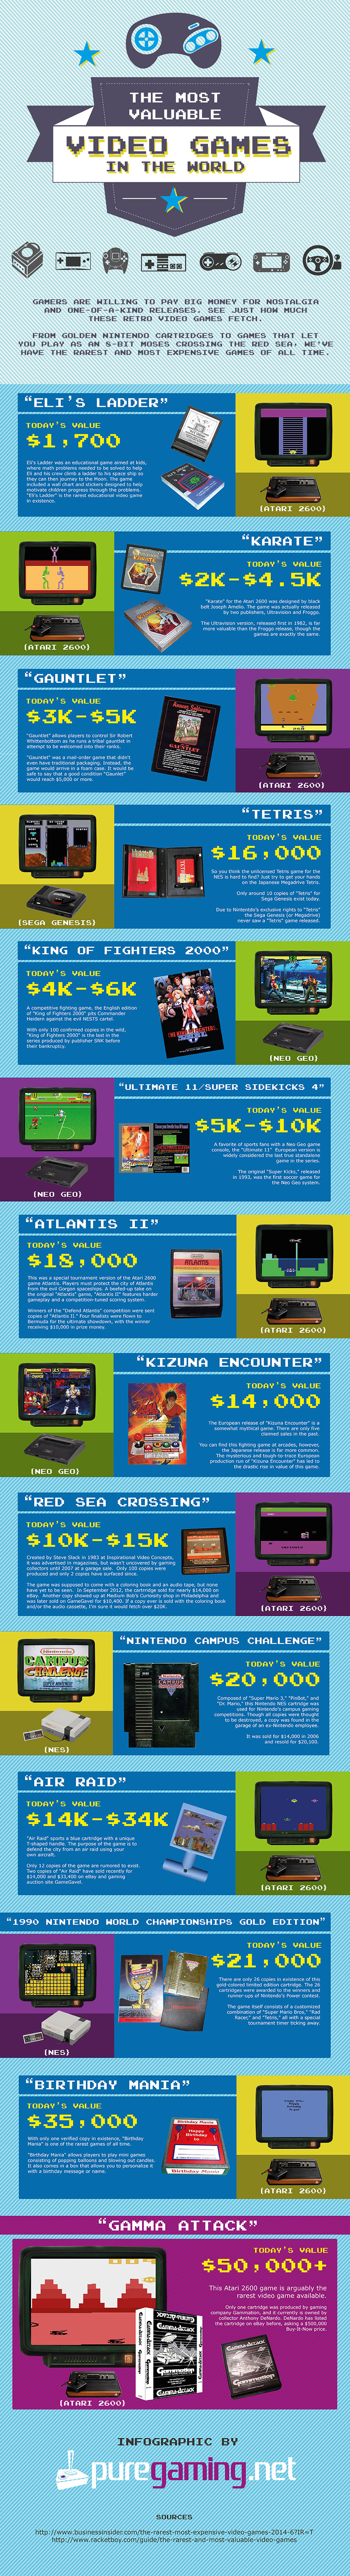 14 Rarest and Most Valuable Video Games in The World (Infographic)